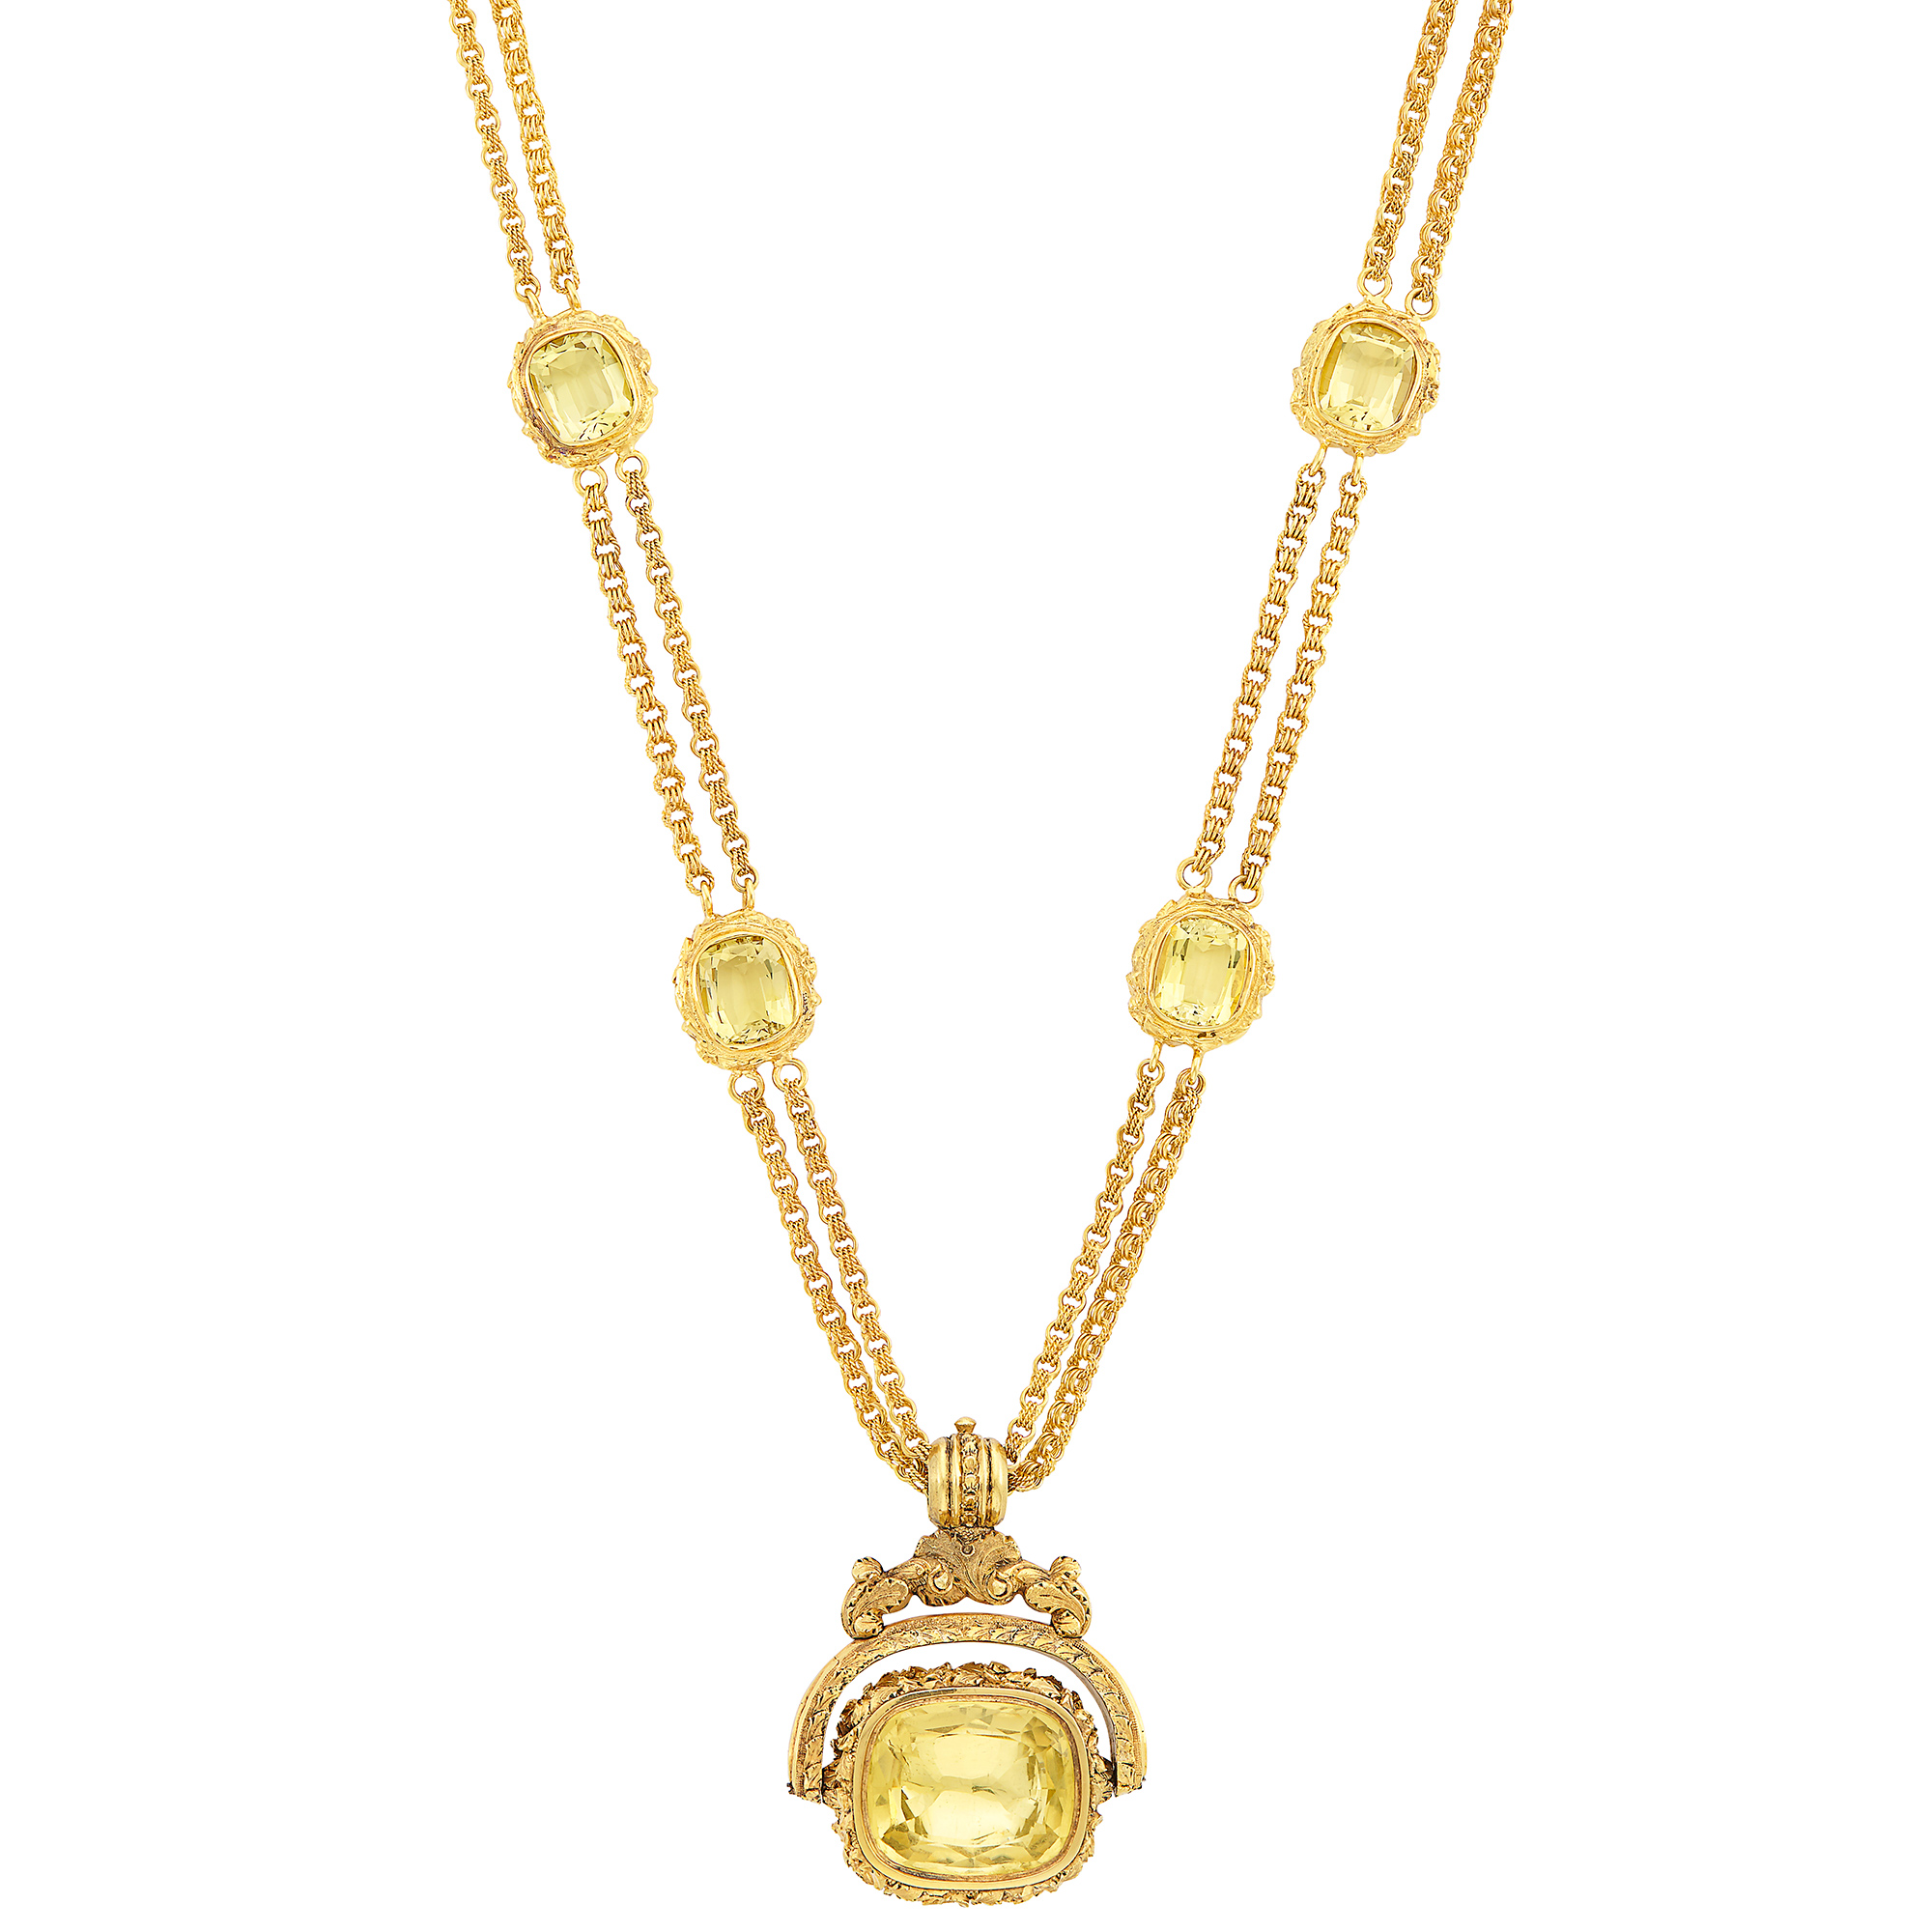 Lot image - Double Strand Gold and Citrine Chain Necklace with Antique Variegated Gold and Citrine Fob Pendant